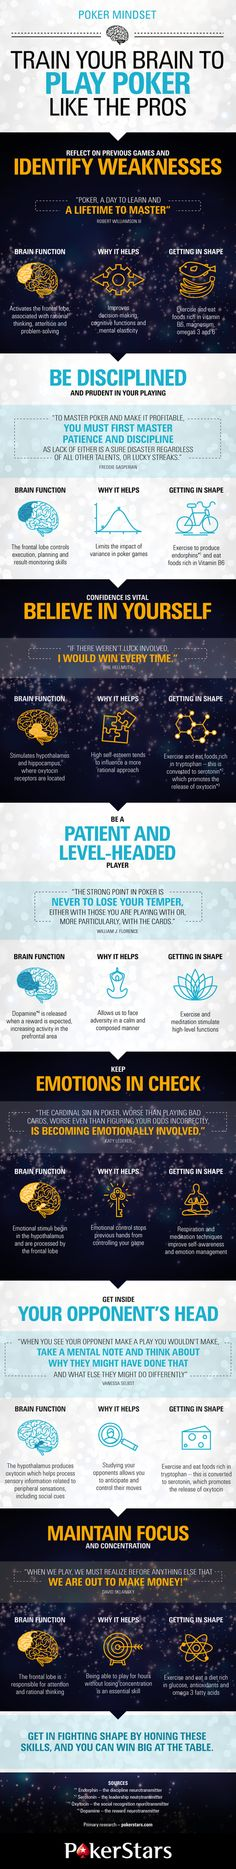 Do you want to be a good at poker? Train your brain! #poker #brain